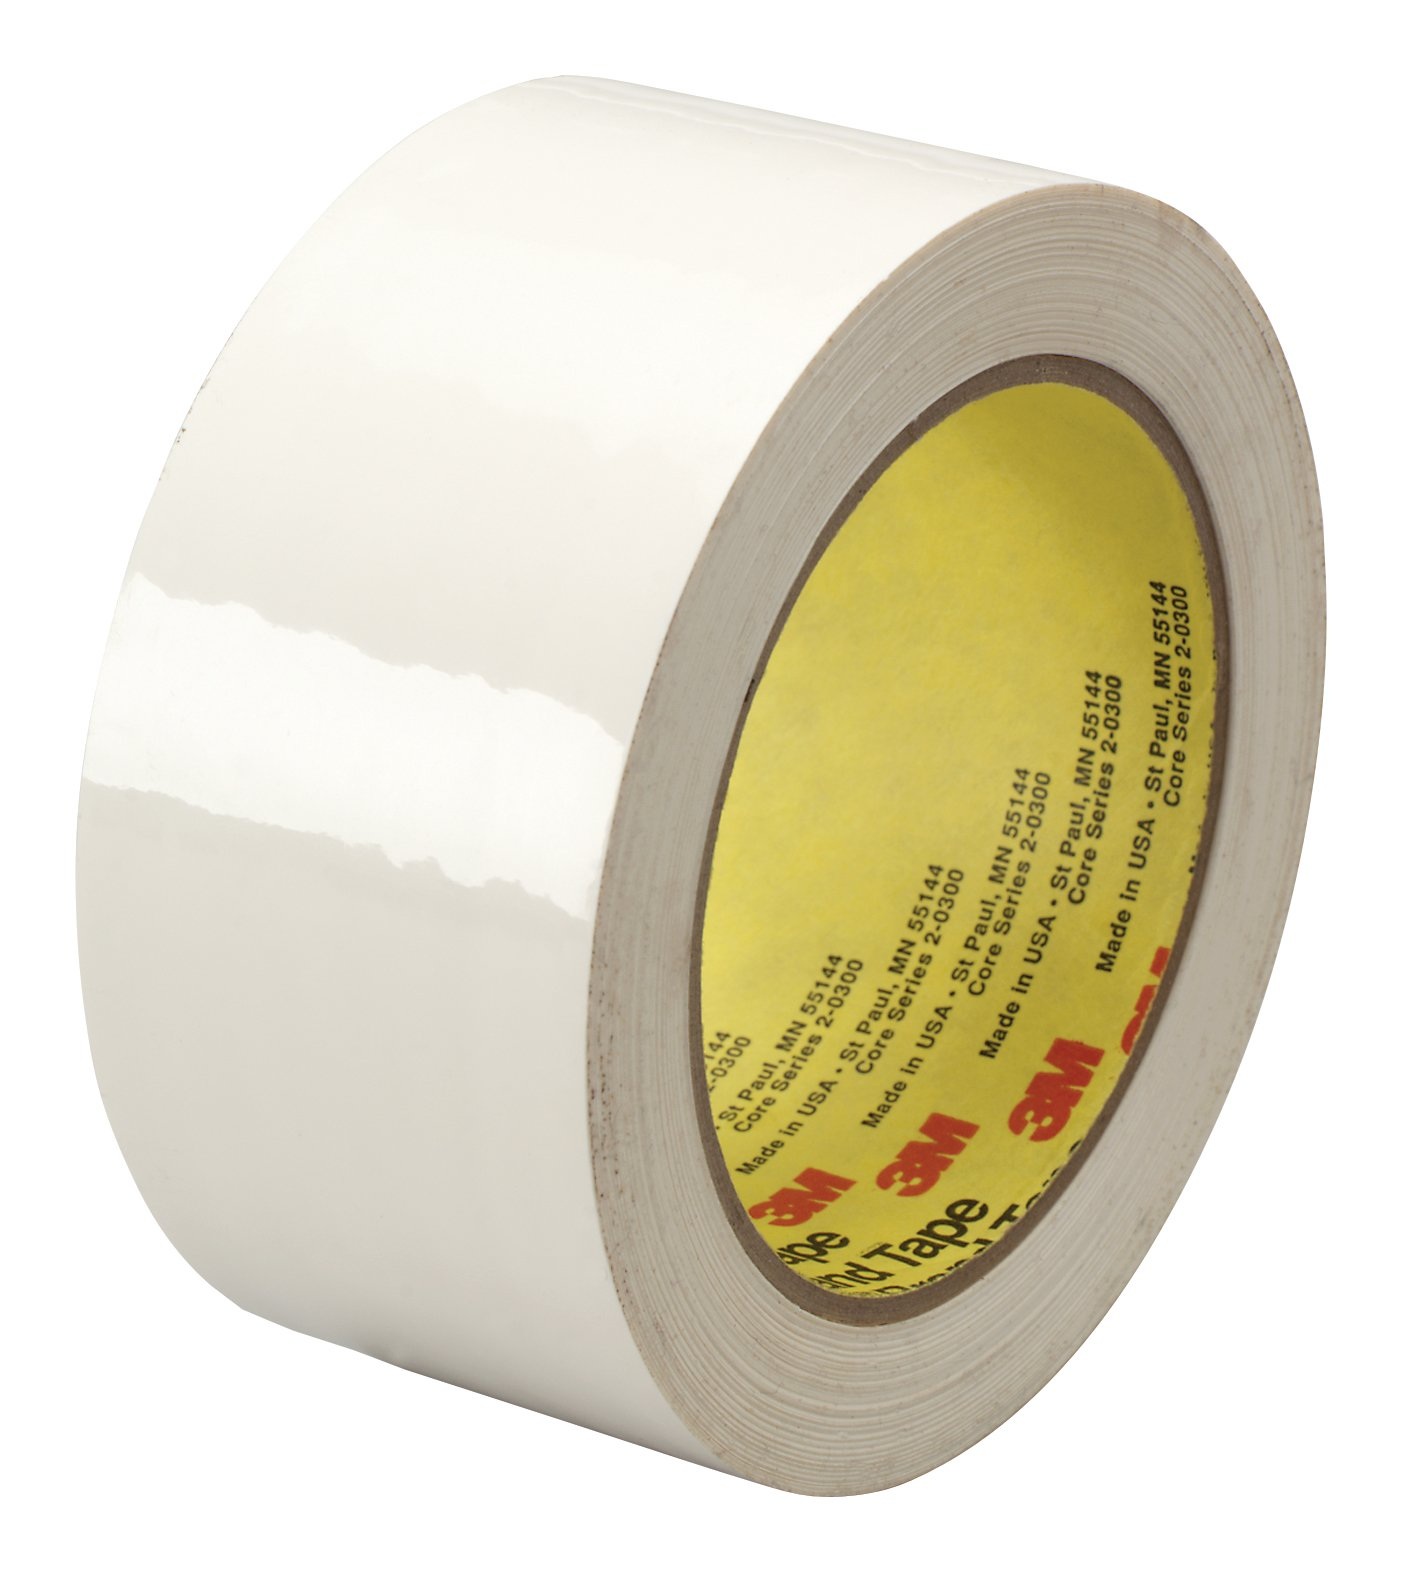 3M Polyethylene Film Tape 483 White, 1 in x 36 yd 5.3 mil, Conveniently Packaged (Pack of 1)